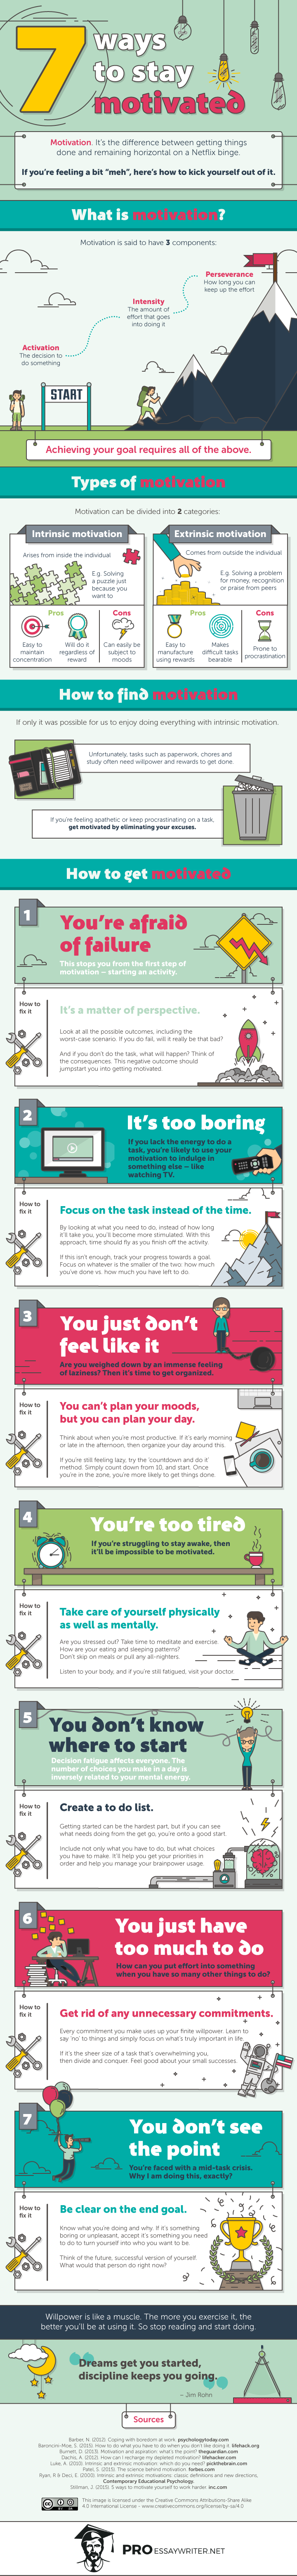 7-ways-to-stay-motivated